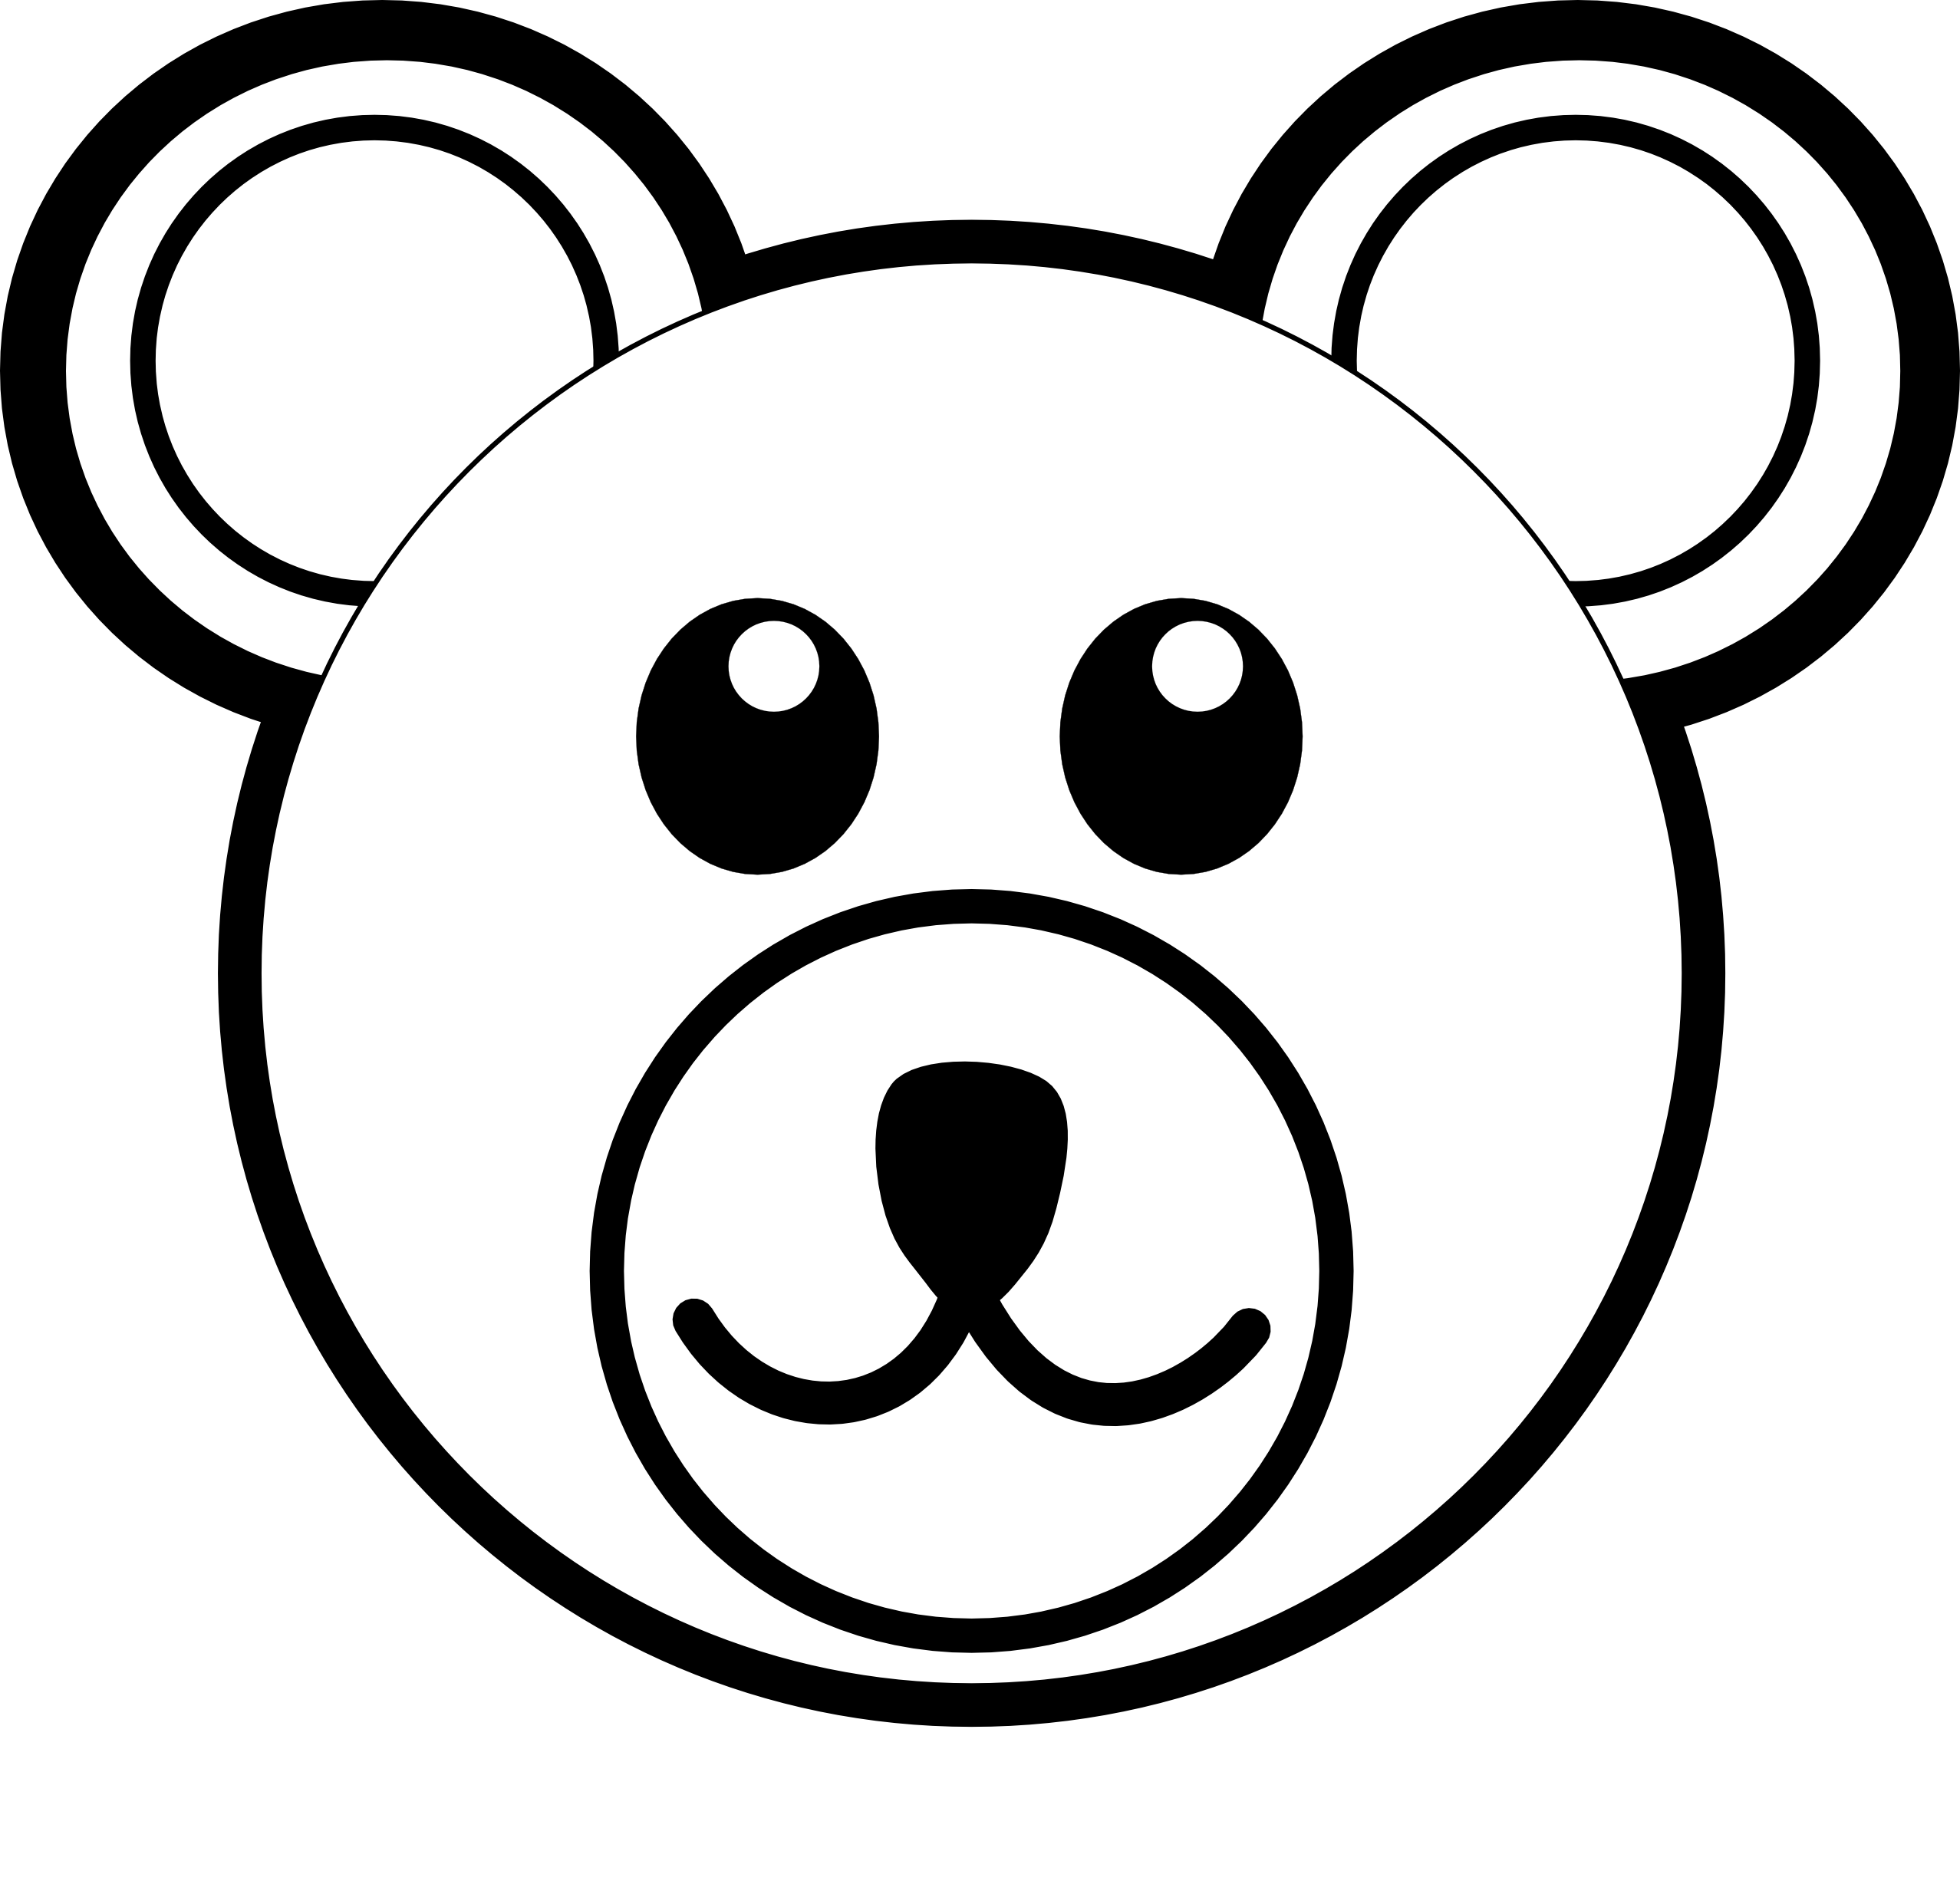 Easy Bear Face Drawing at GetDrawings.com | Free for personal use ...